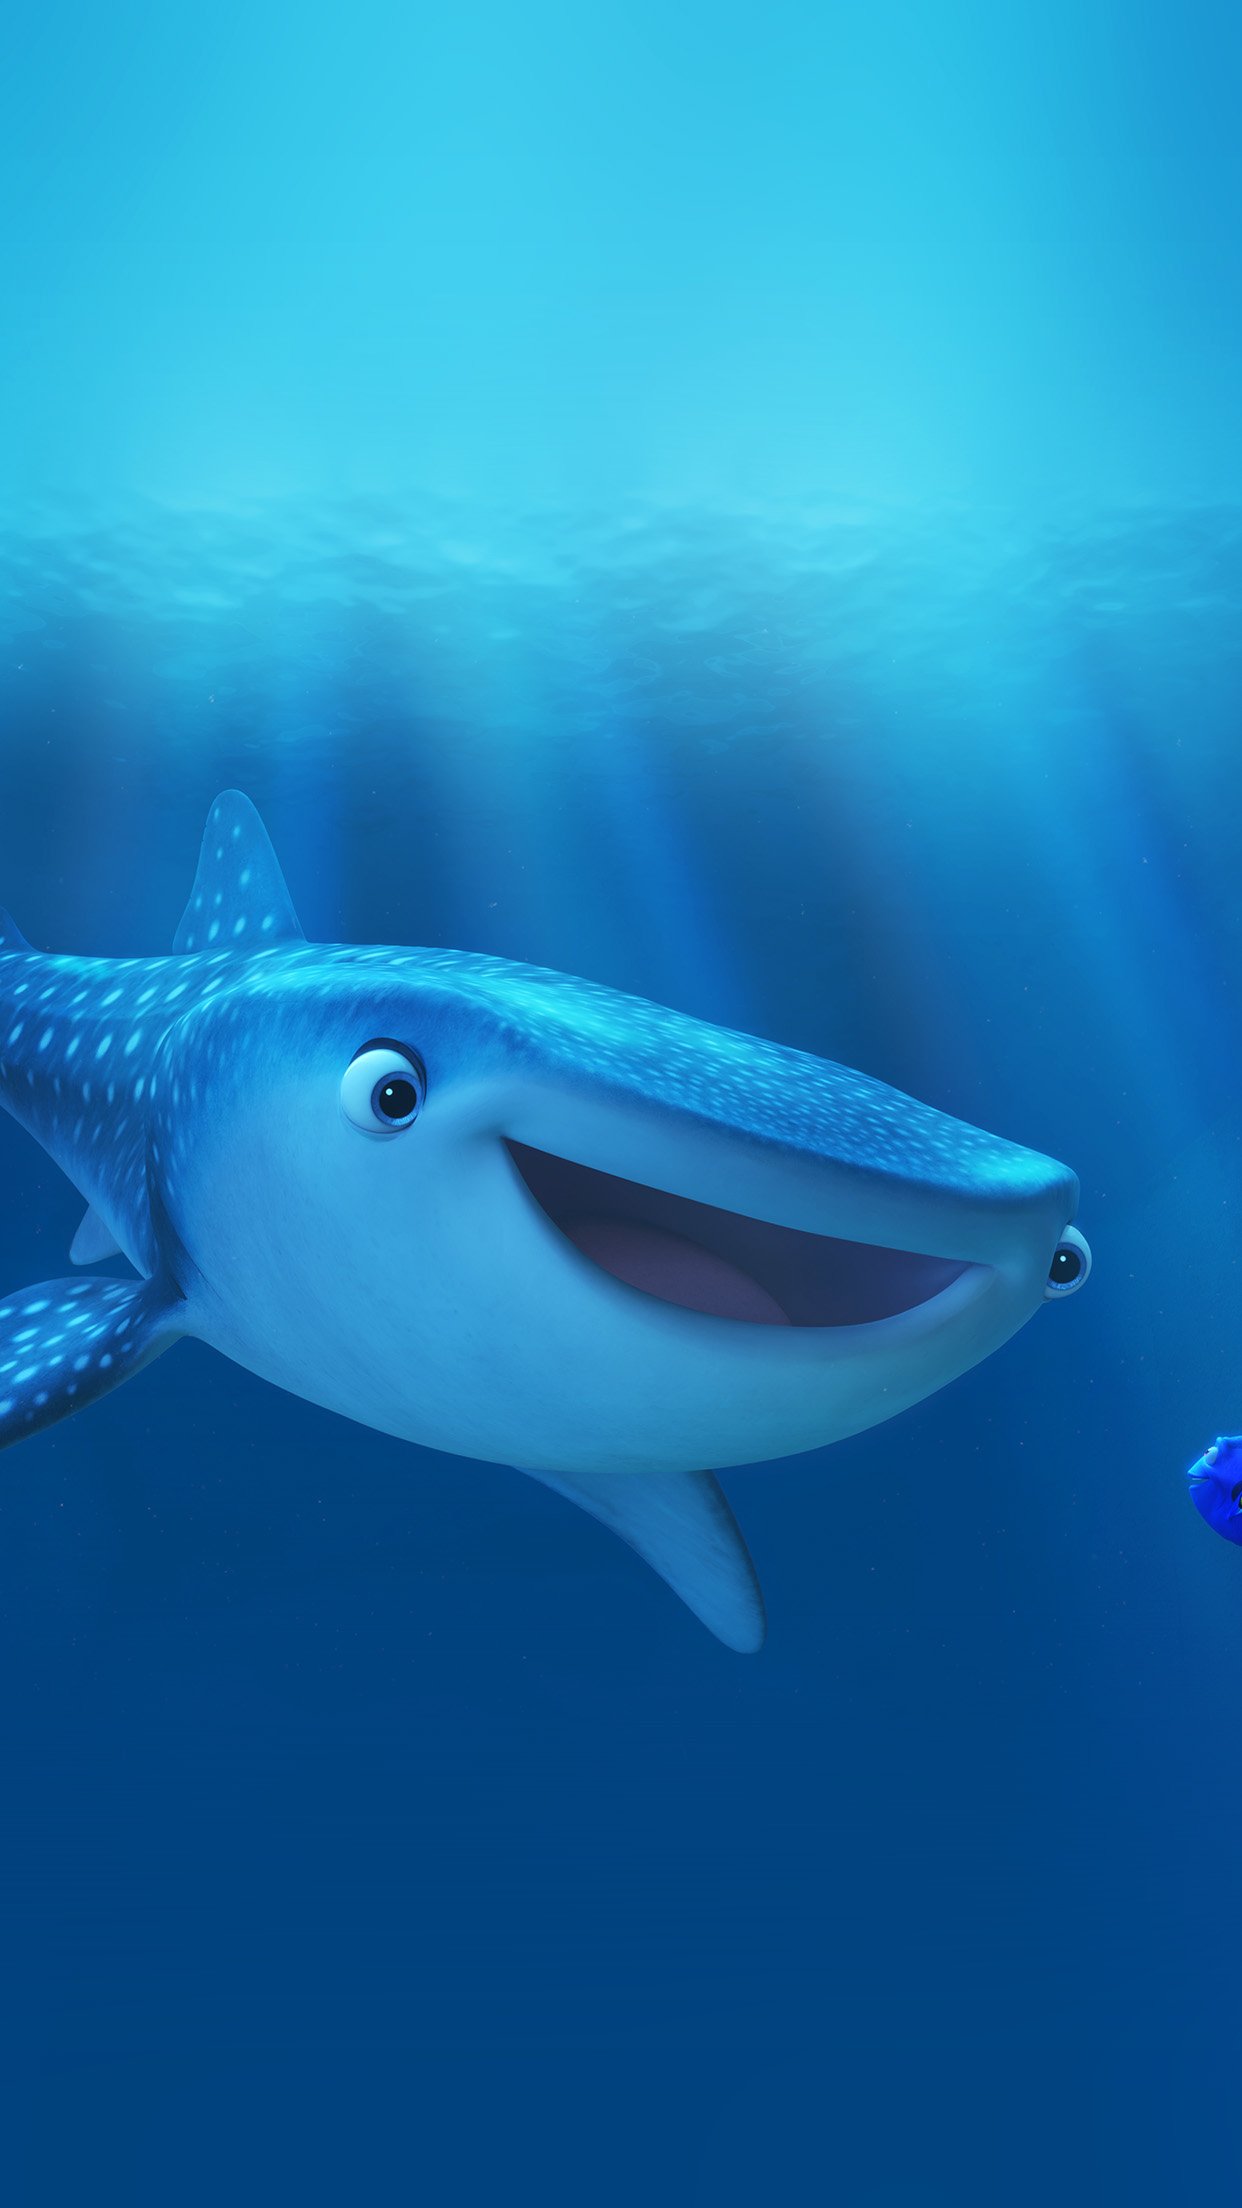 Cute Fall Wallpaper Iphone 6 Papers Co Iphone Wallpaper Ar00 Disney Finding Nemo